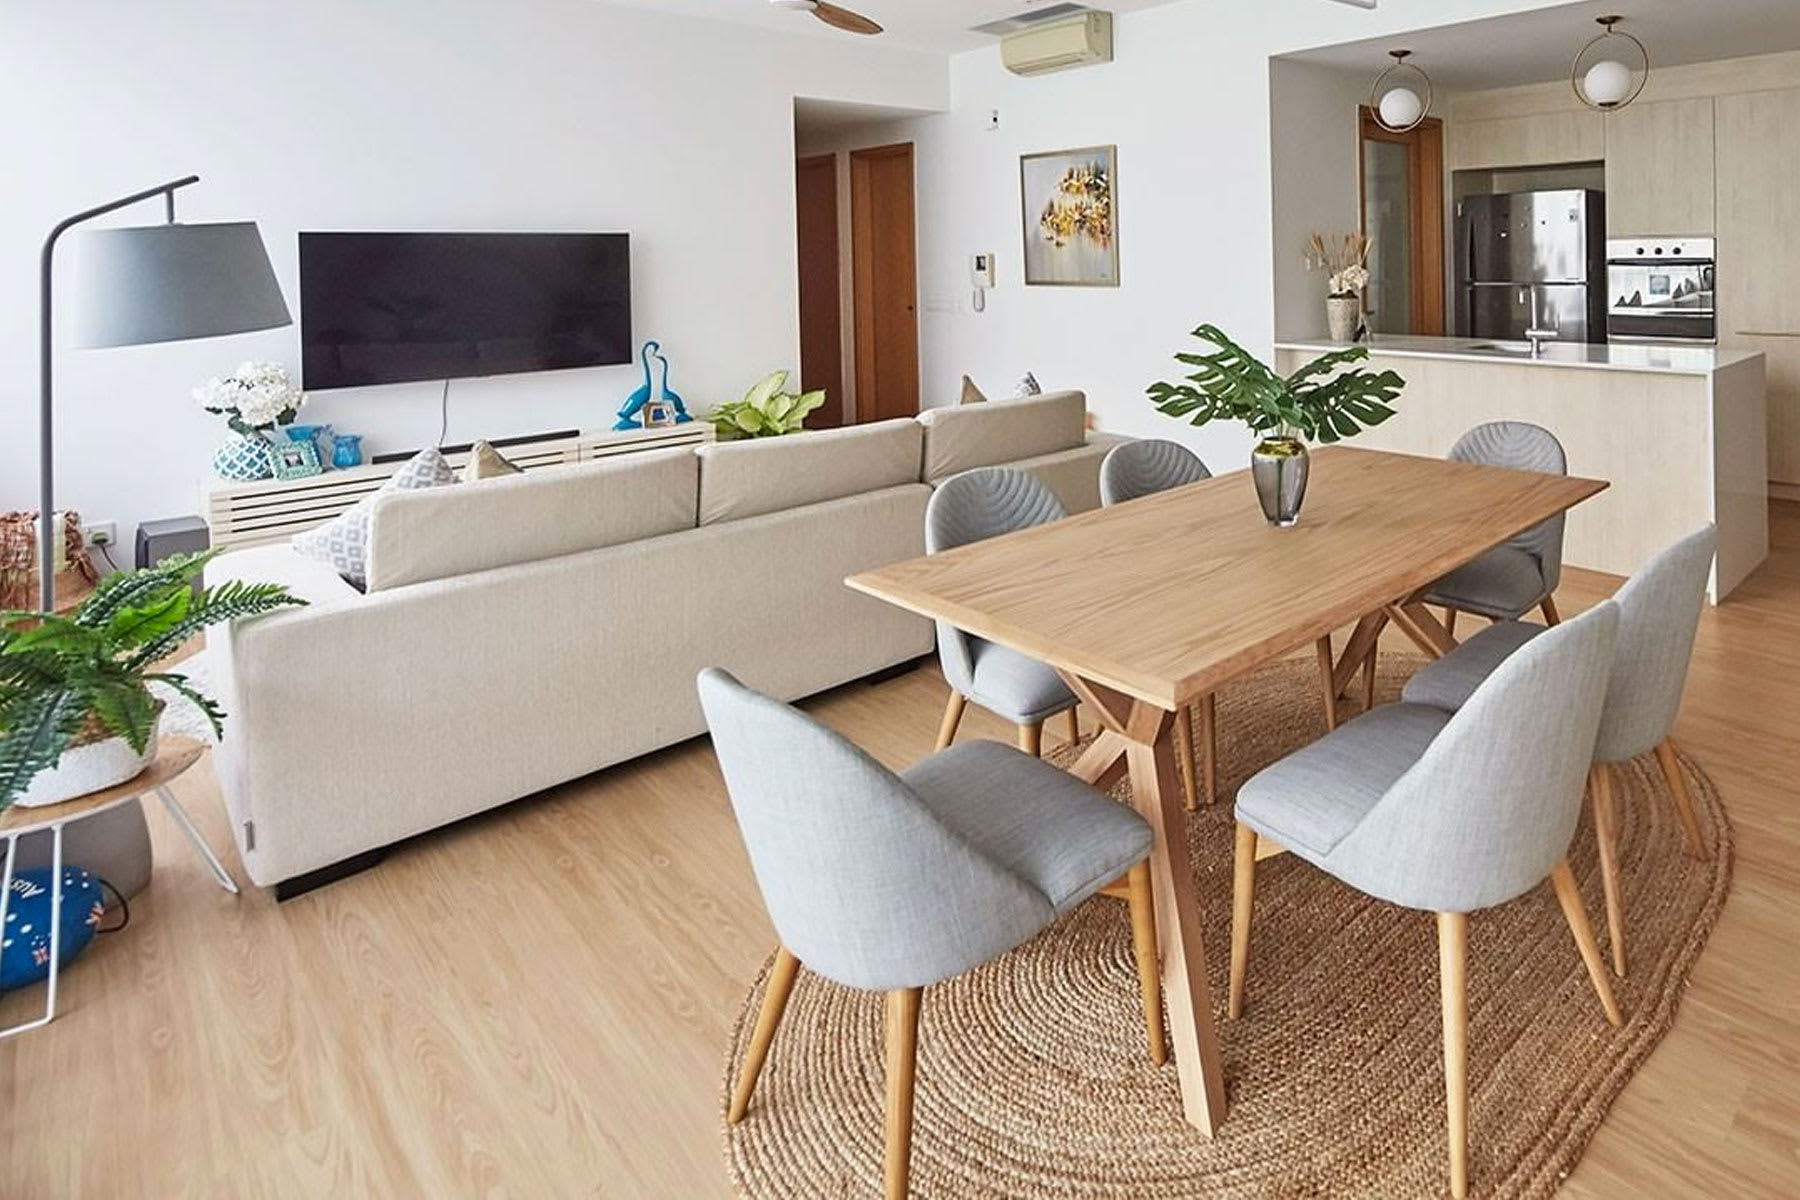 Bright open plan home with dining table, chairs and sofa